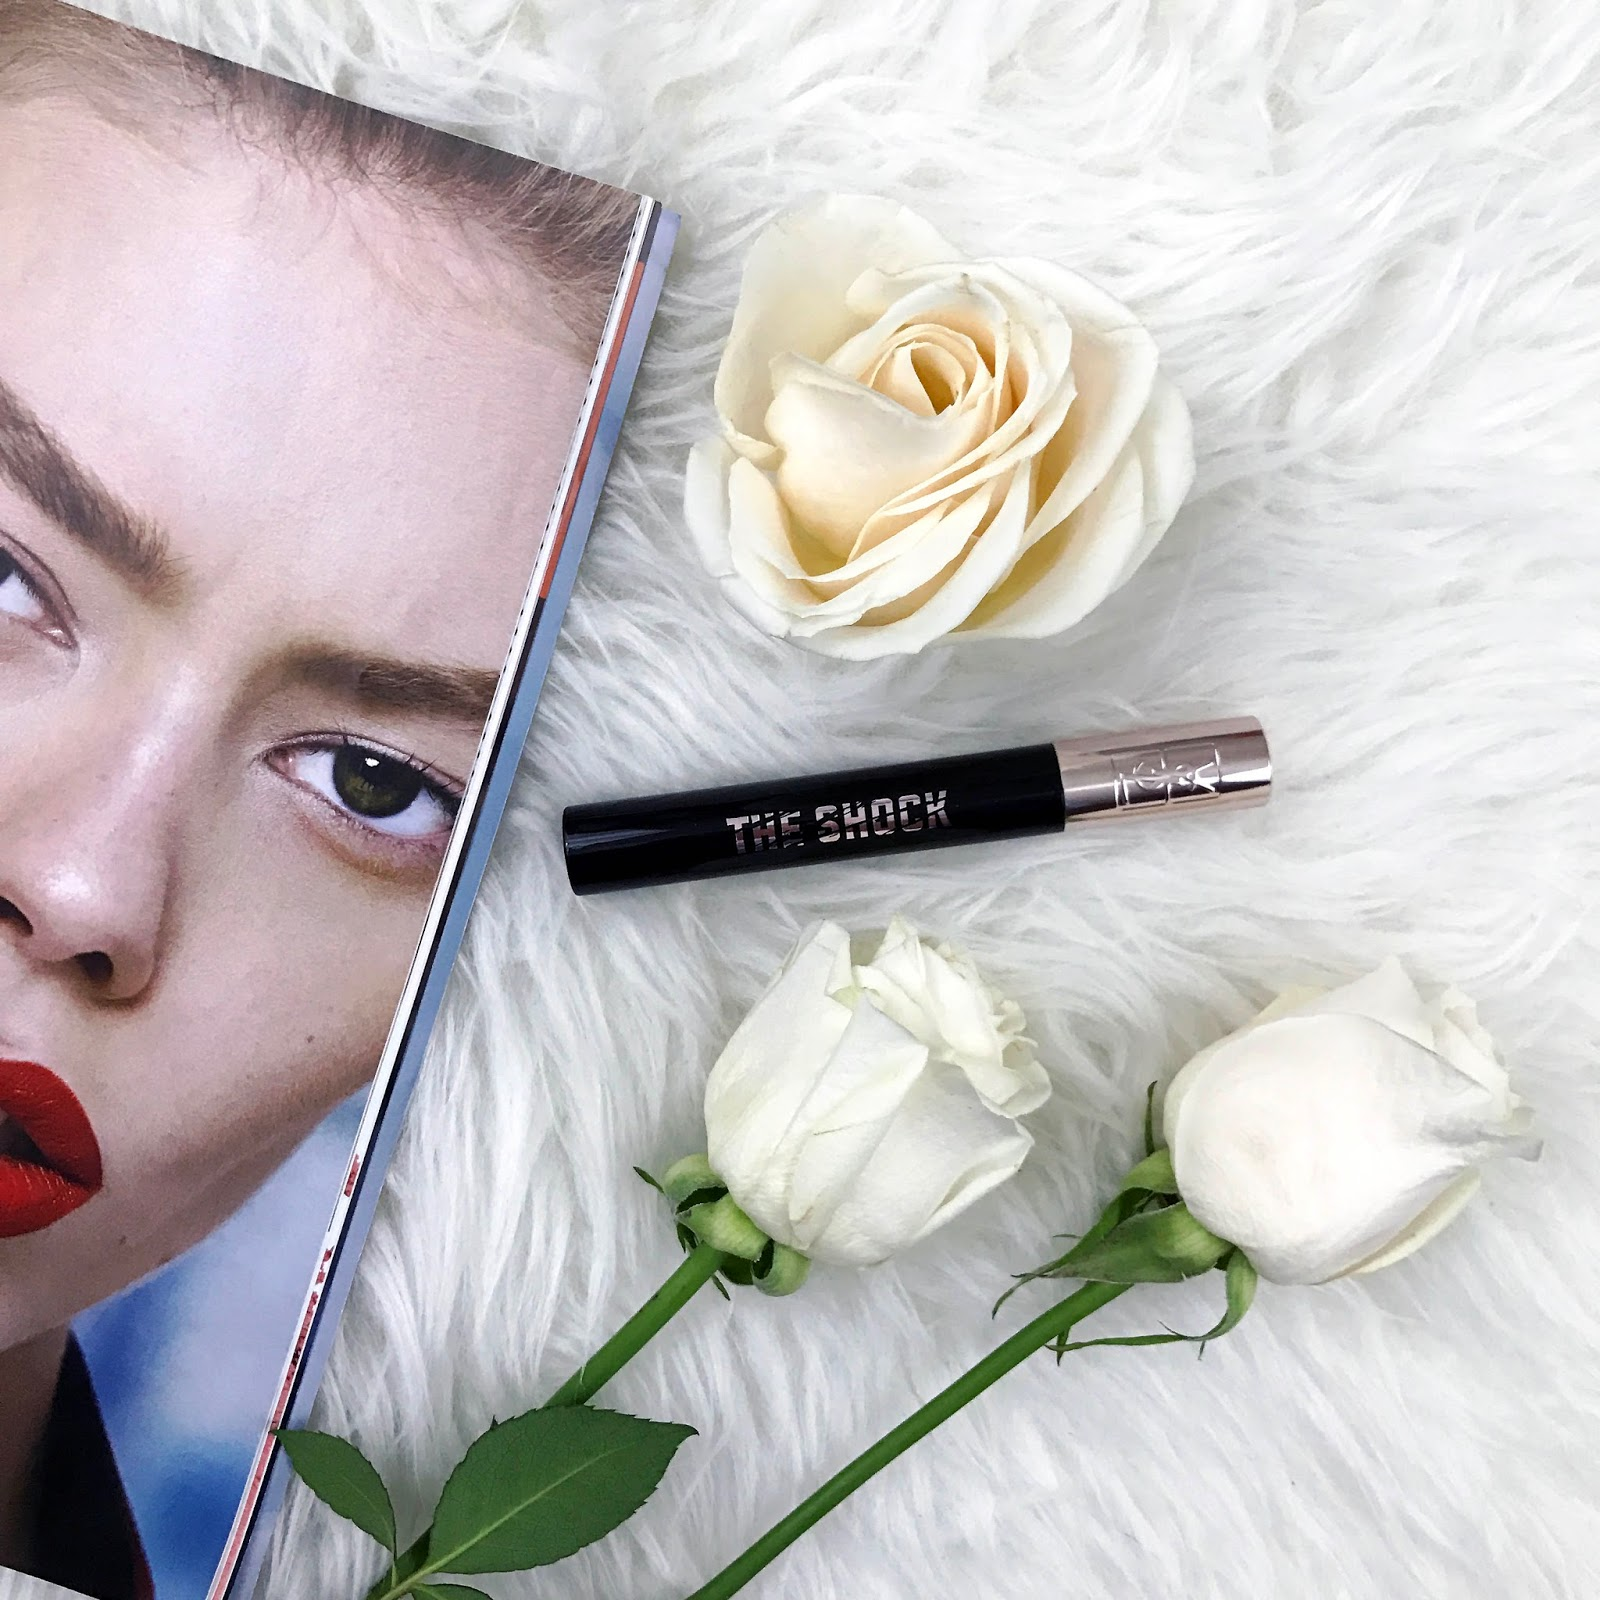 YSL The shock mascara review